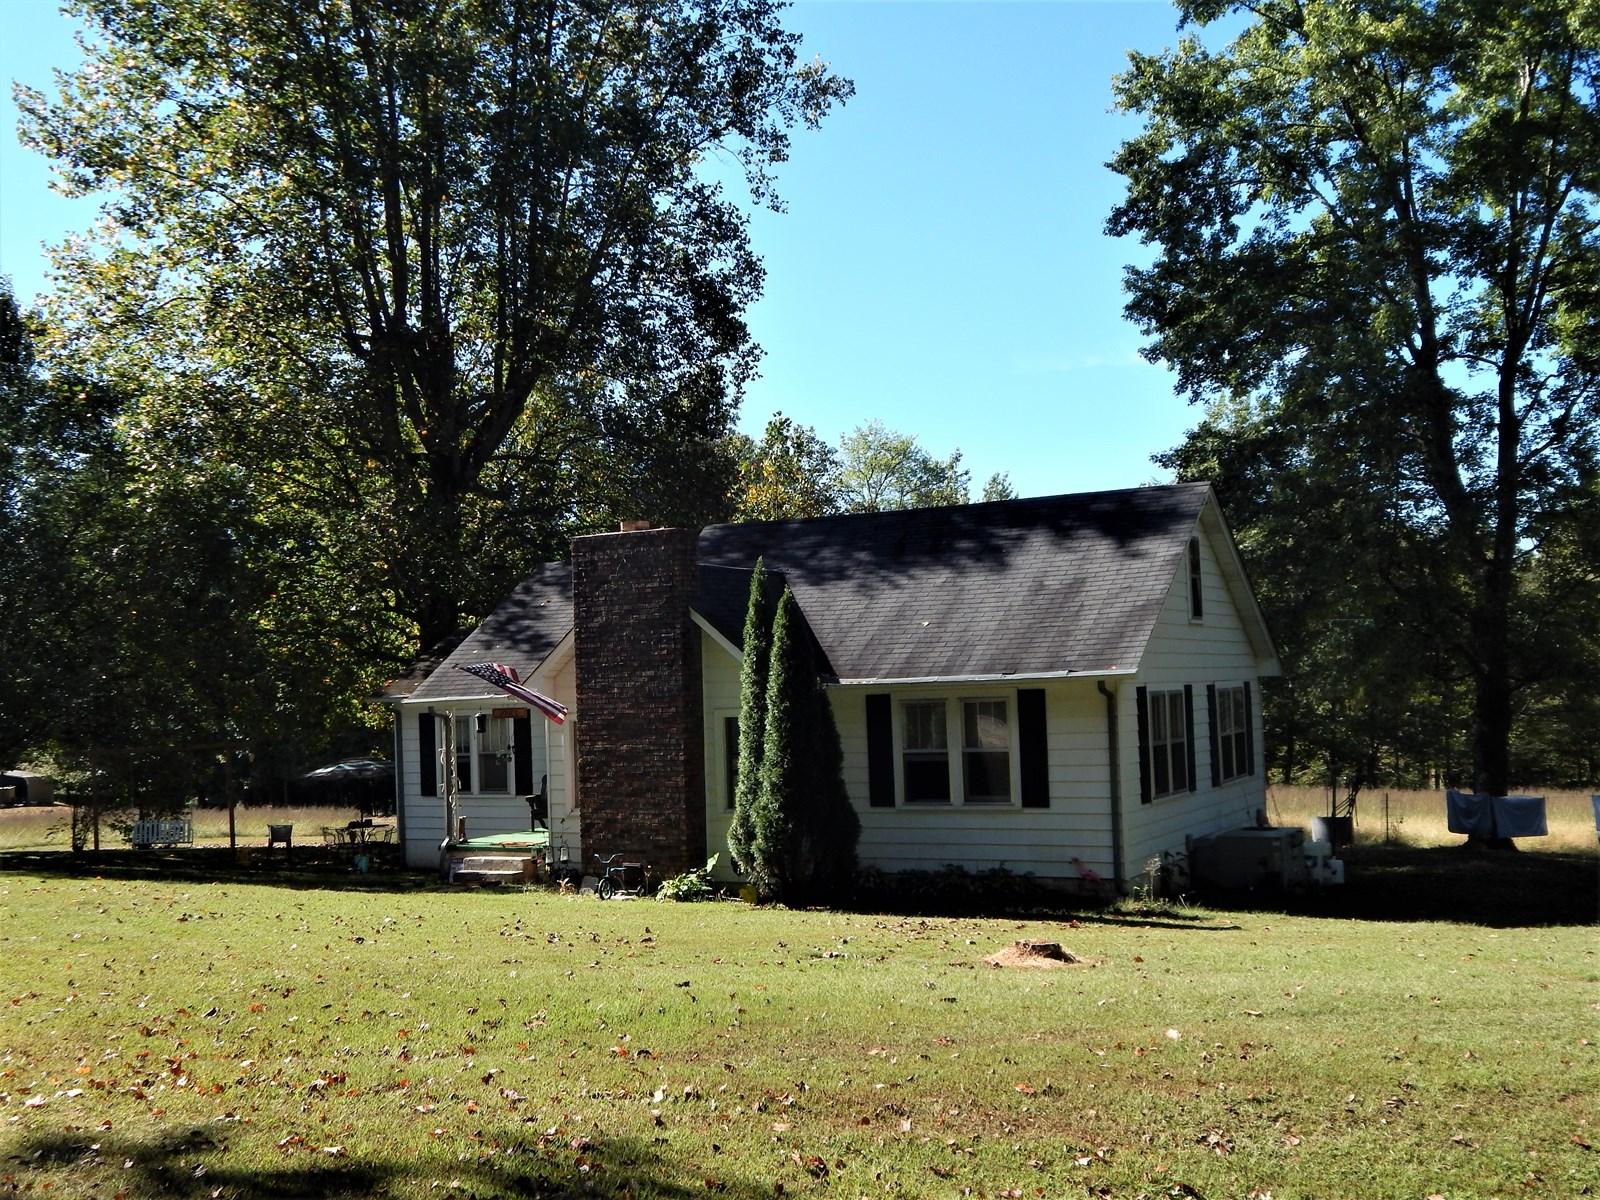 Rustic Tn. Country Home, 2 Bed-1 Bath, 9.8 Acres, Creek, Pas